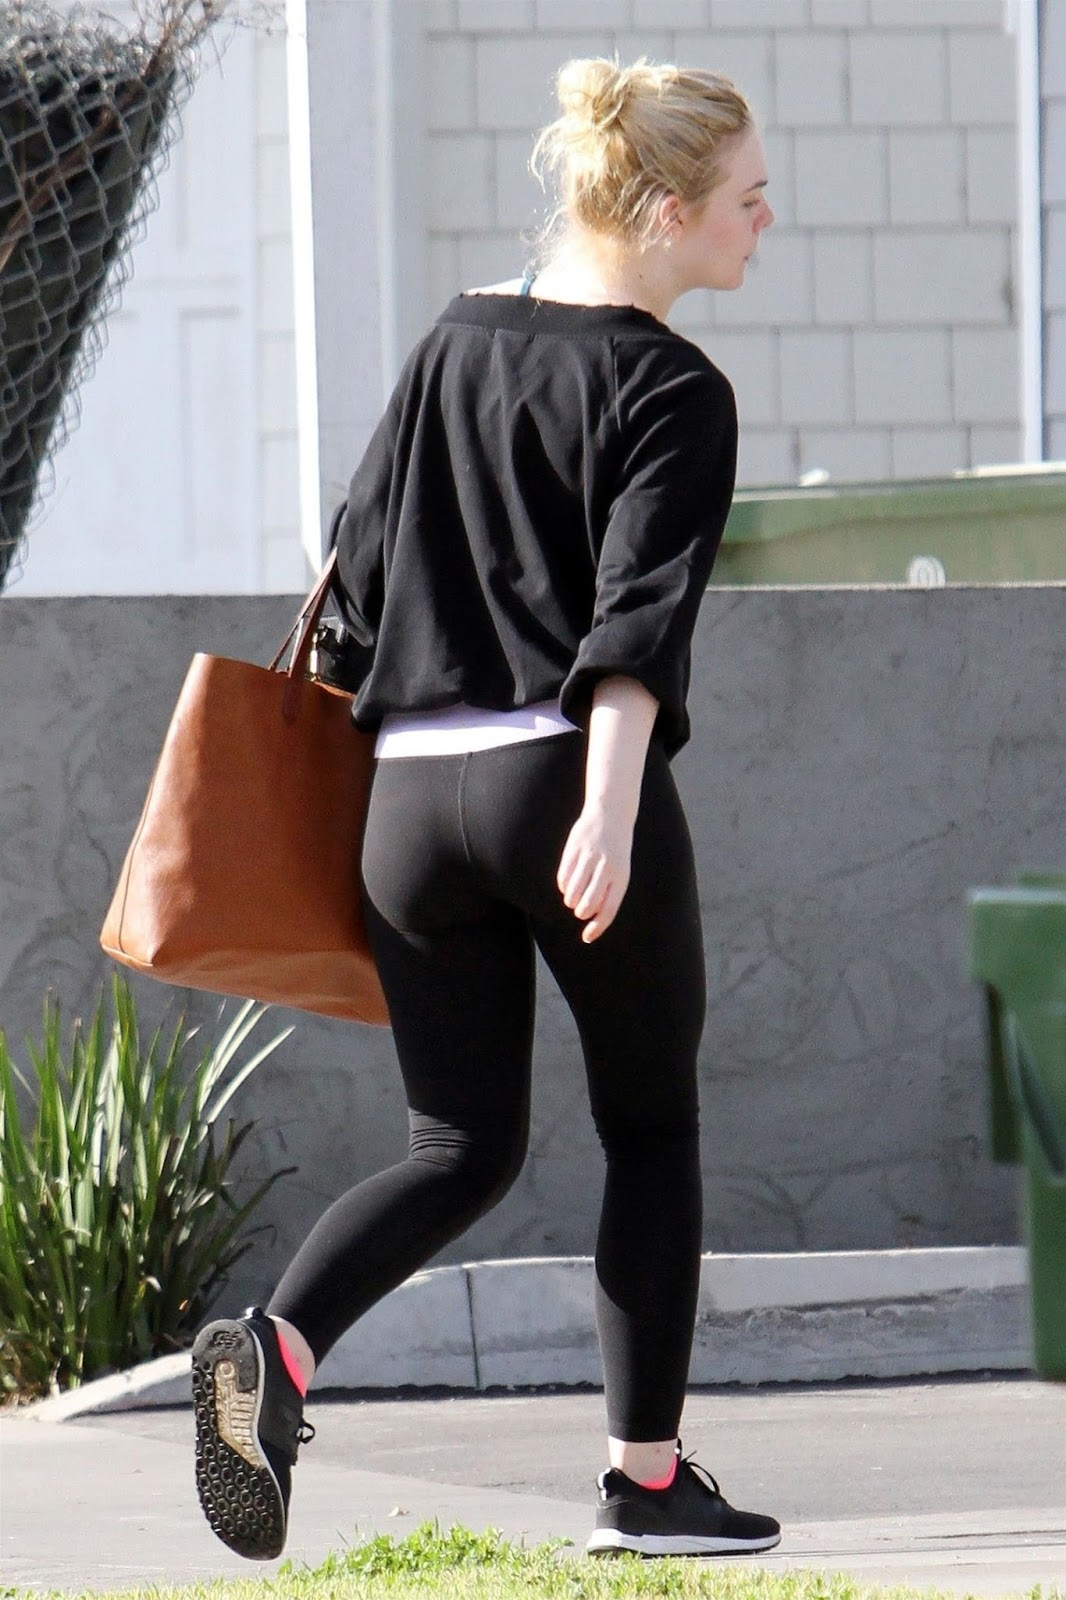 Elle Fanning Booty in Tights 2018